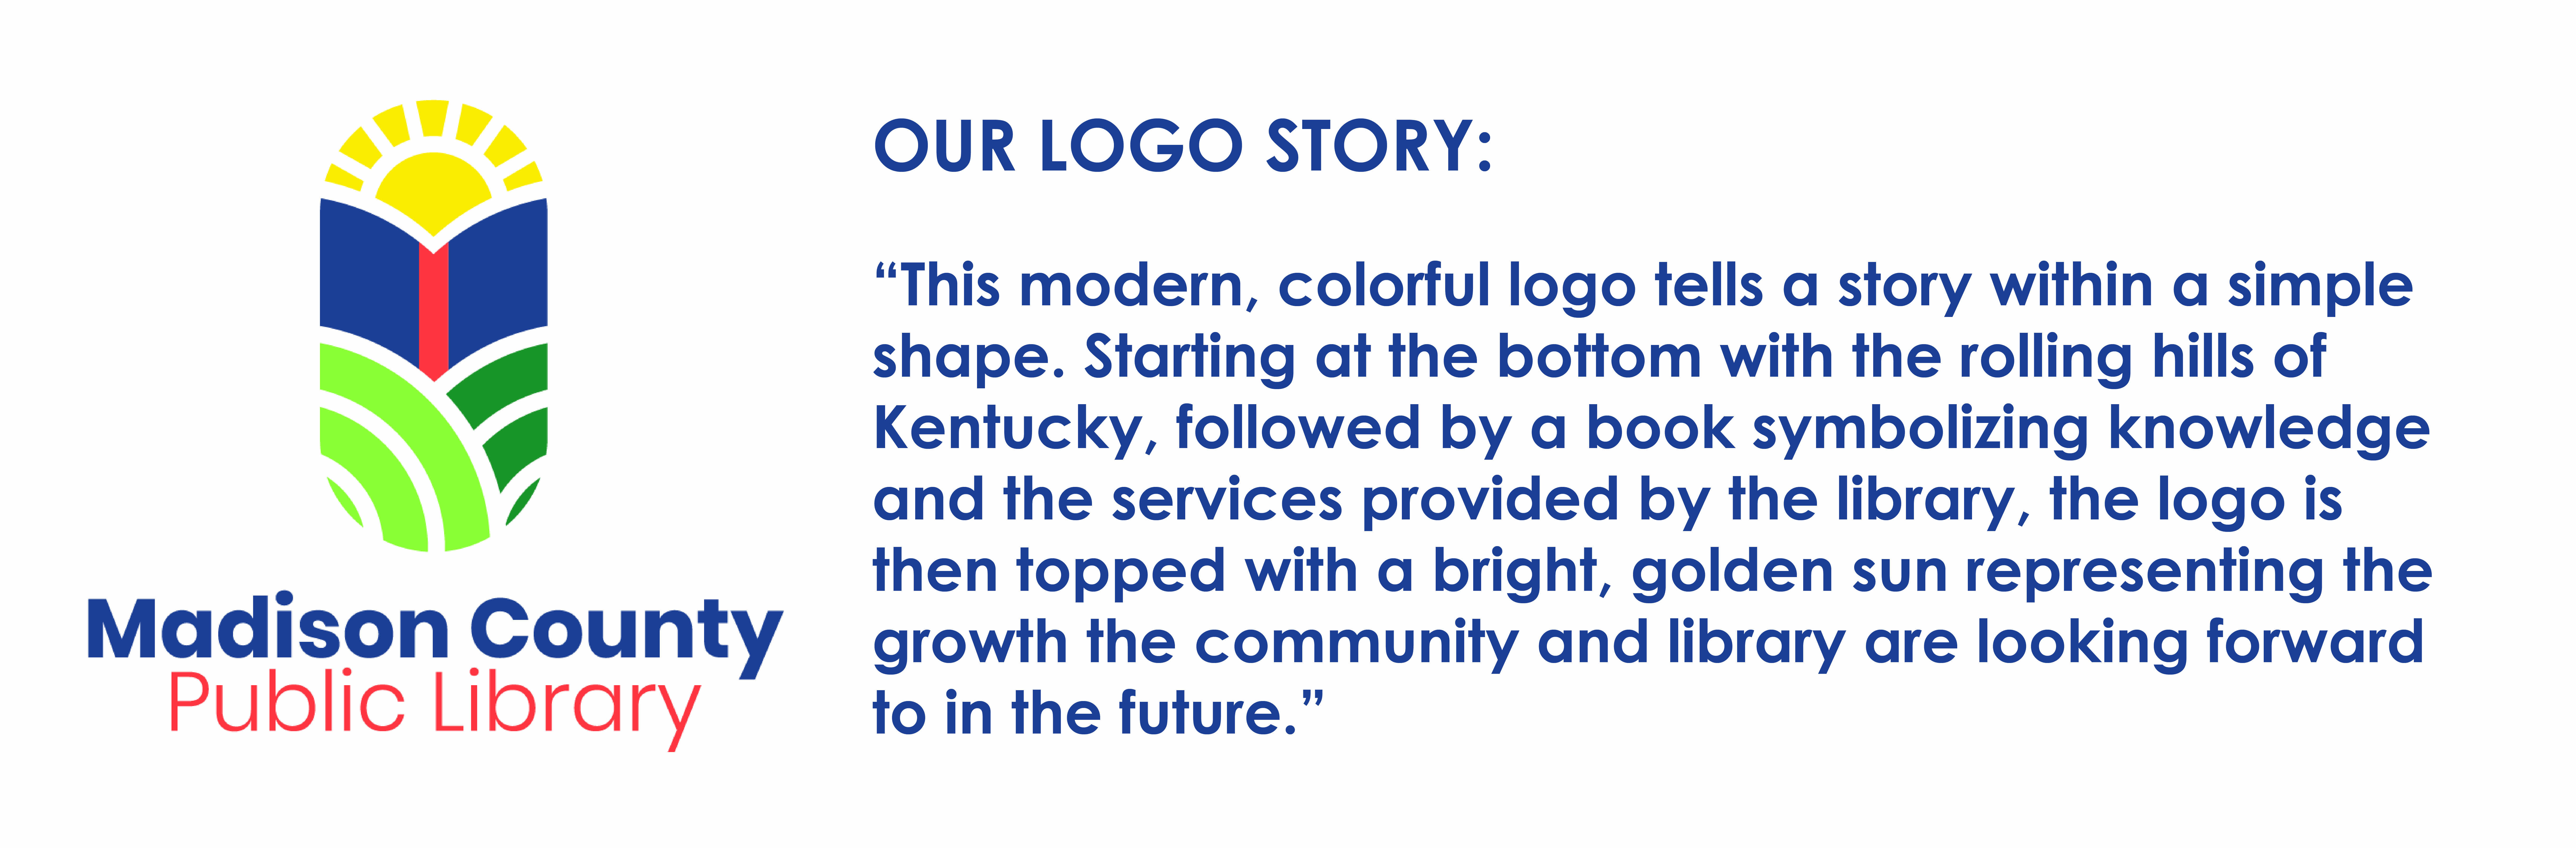 Story of the new library logo